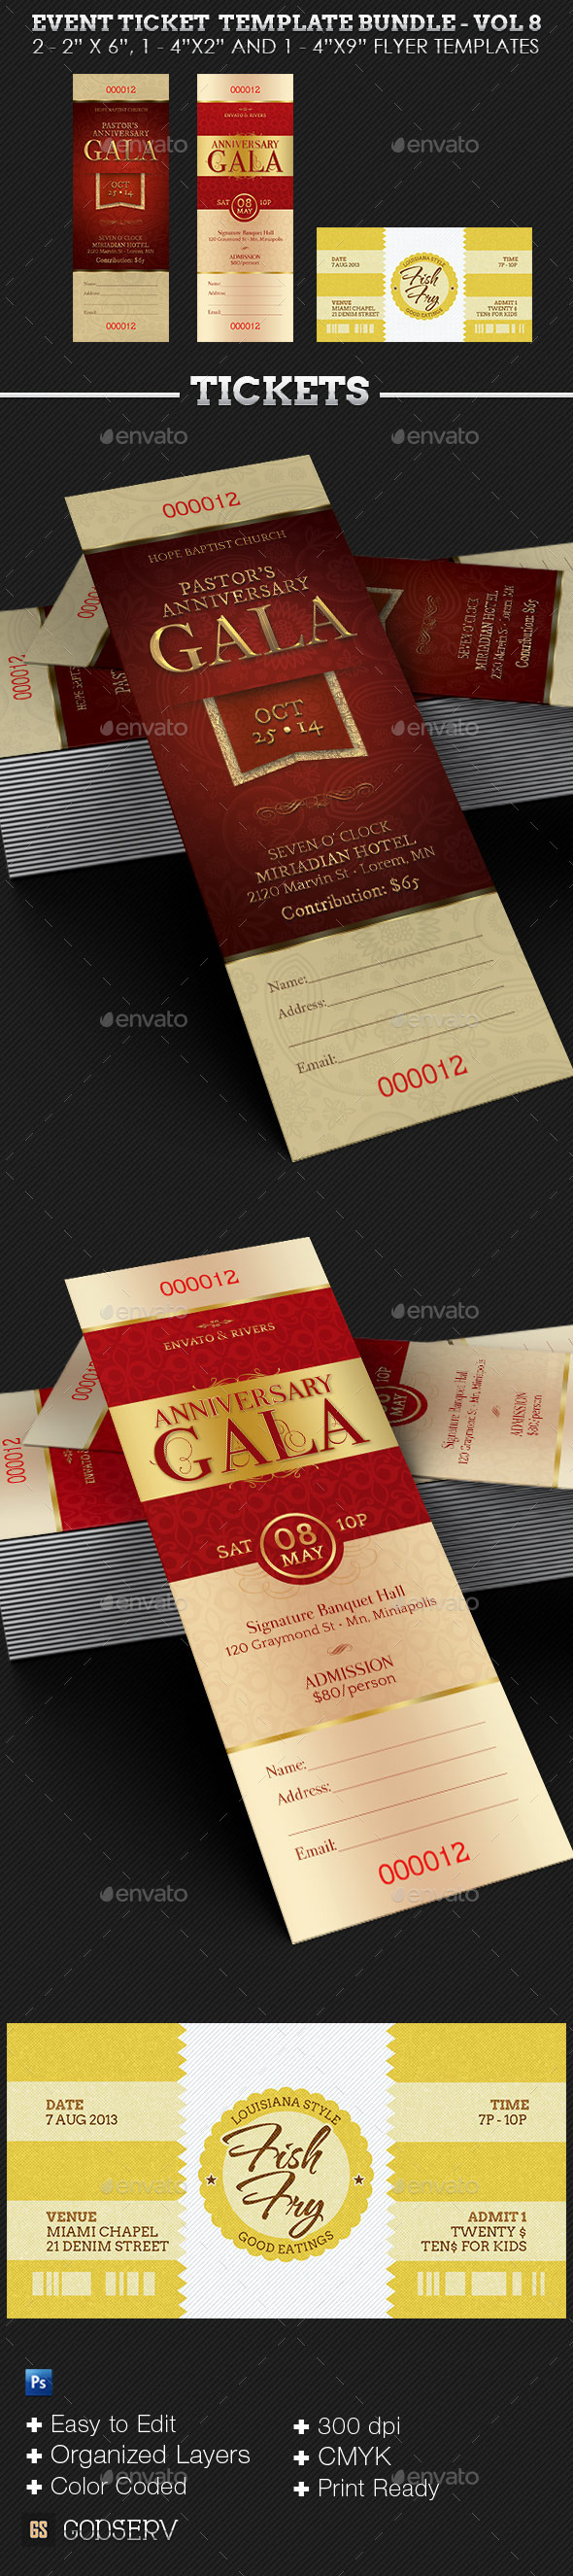 GraphicRiver Event Ticket Template Bundle Volume 8 9927878